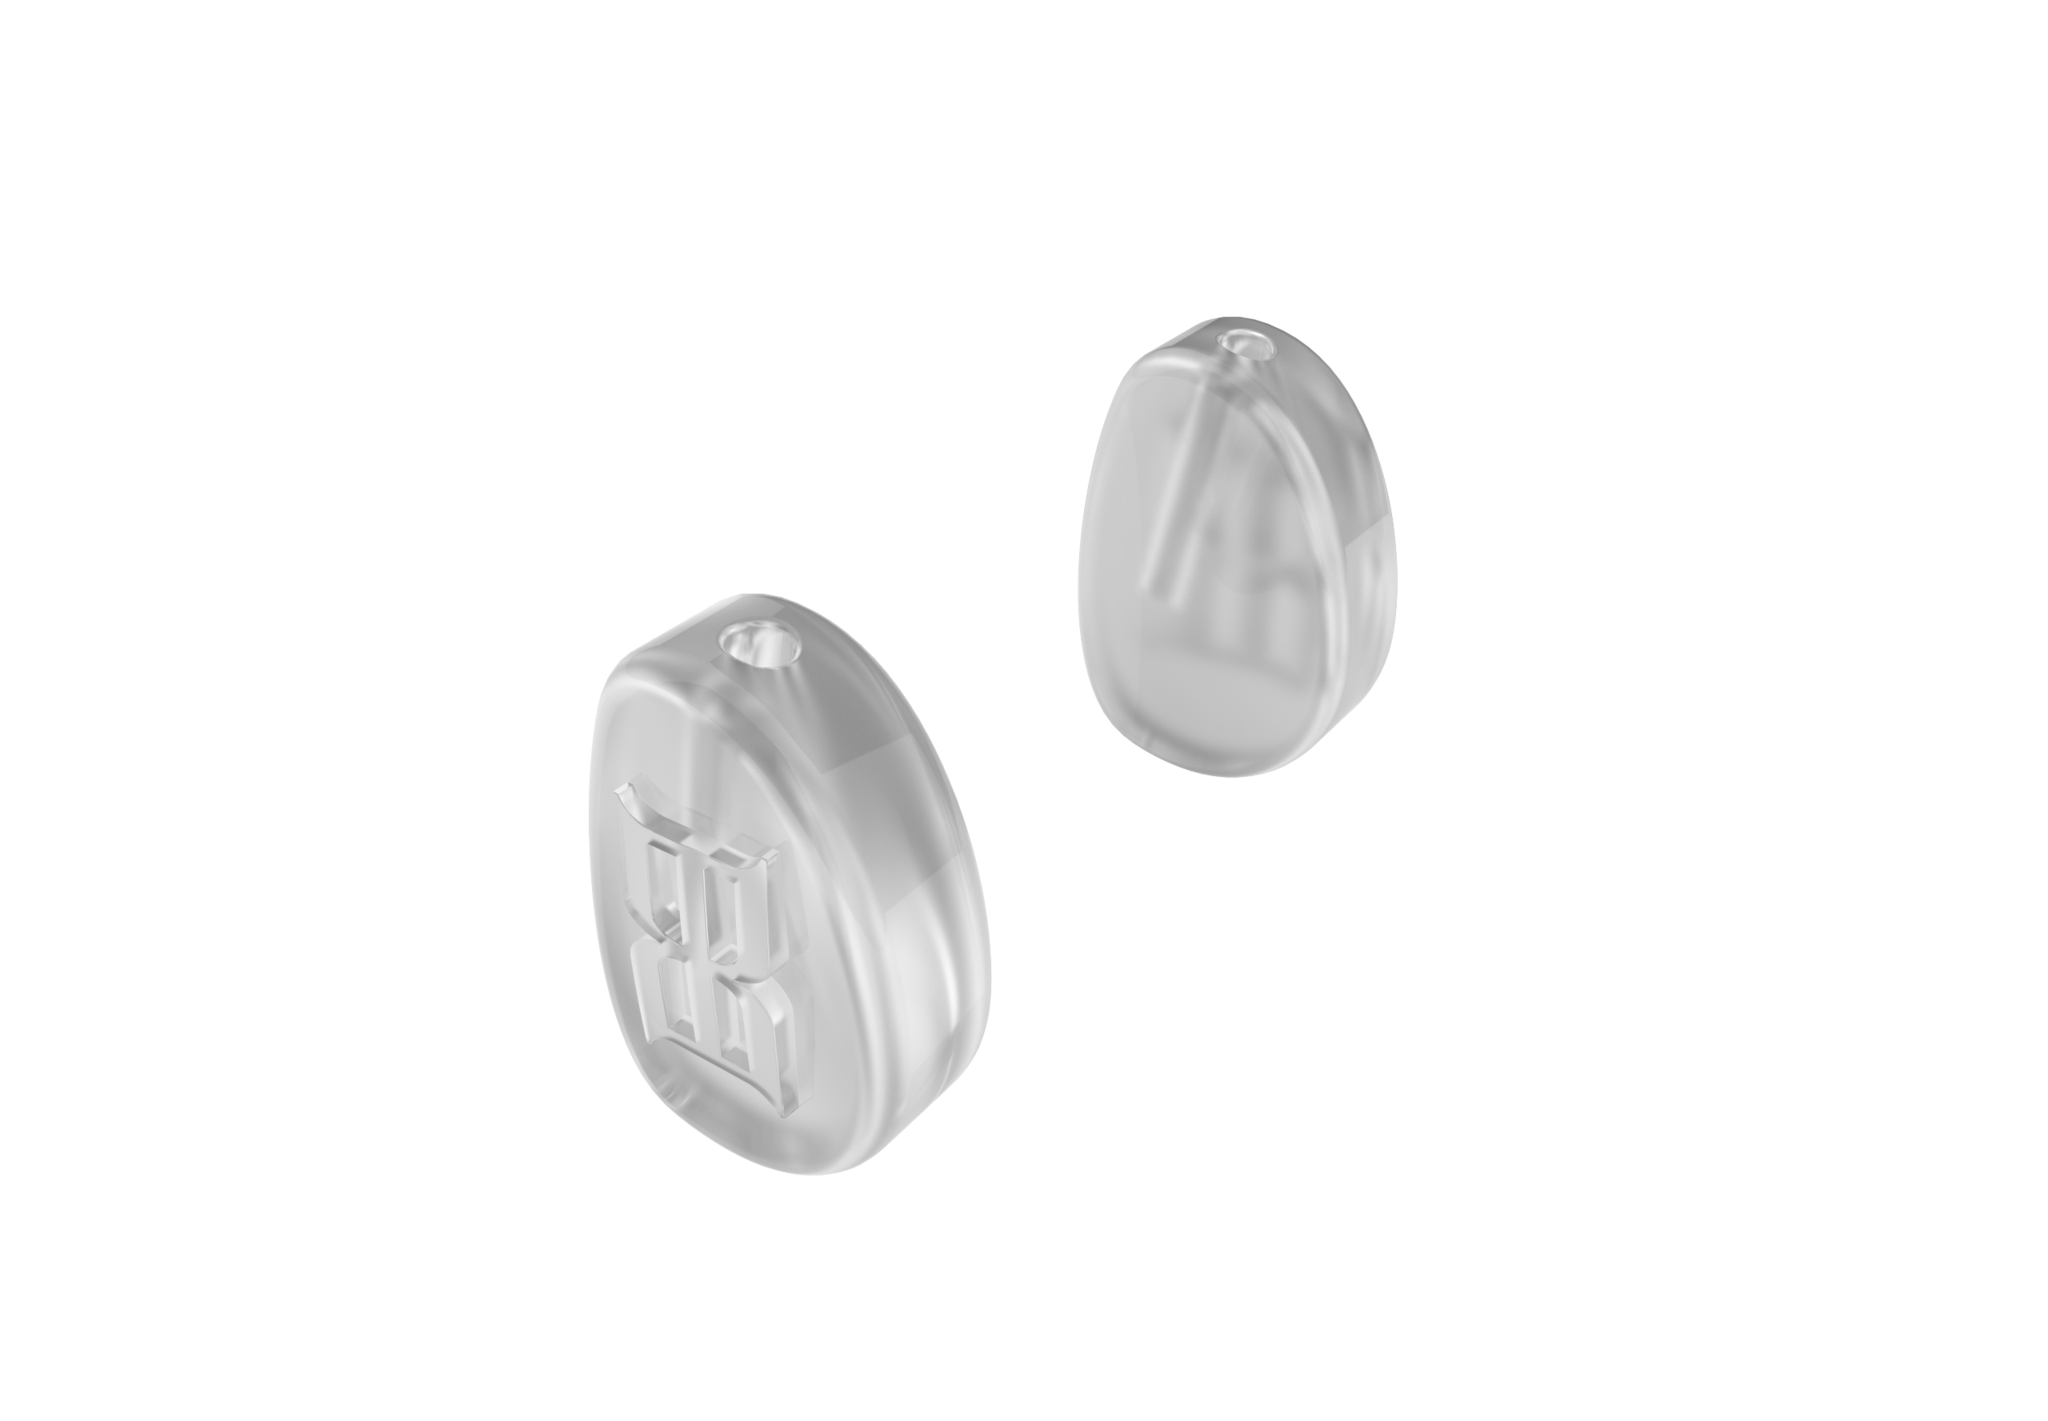 REPLACEMENT NOSE PADS